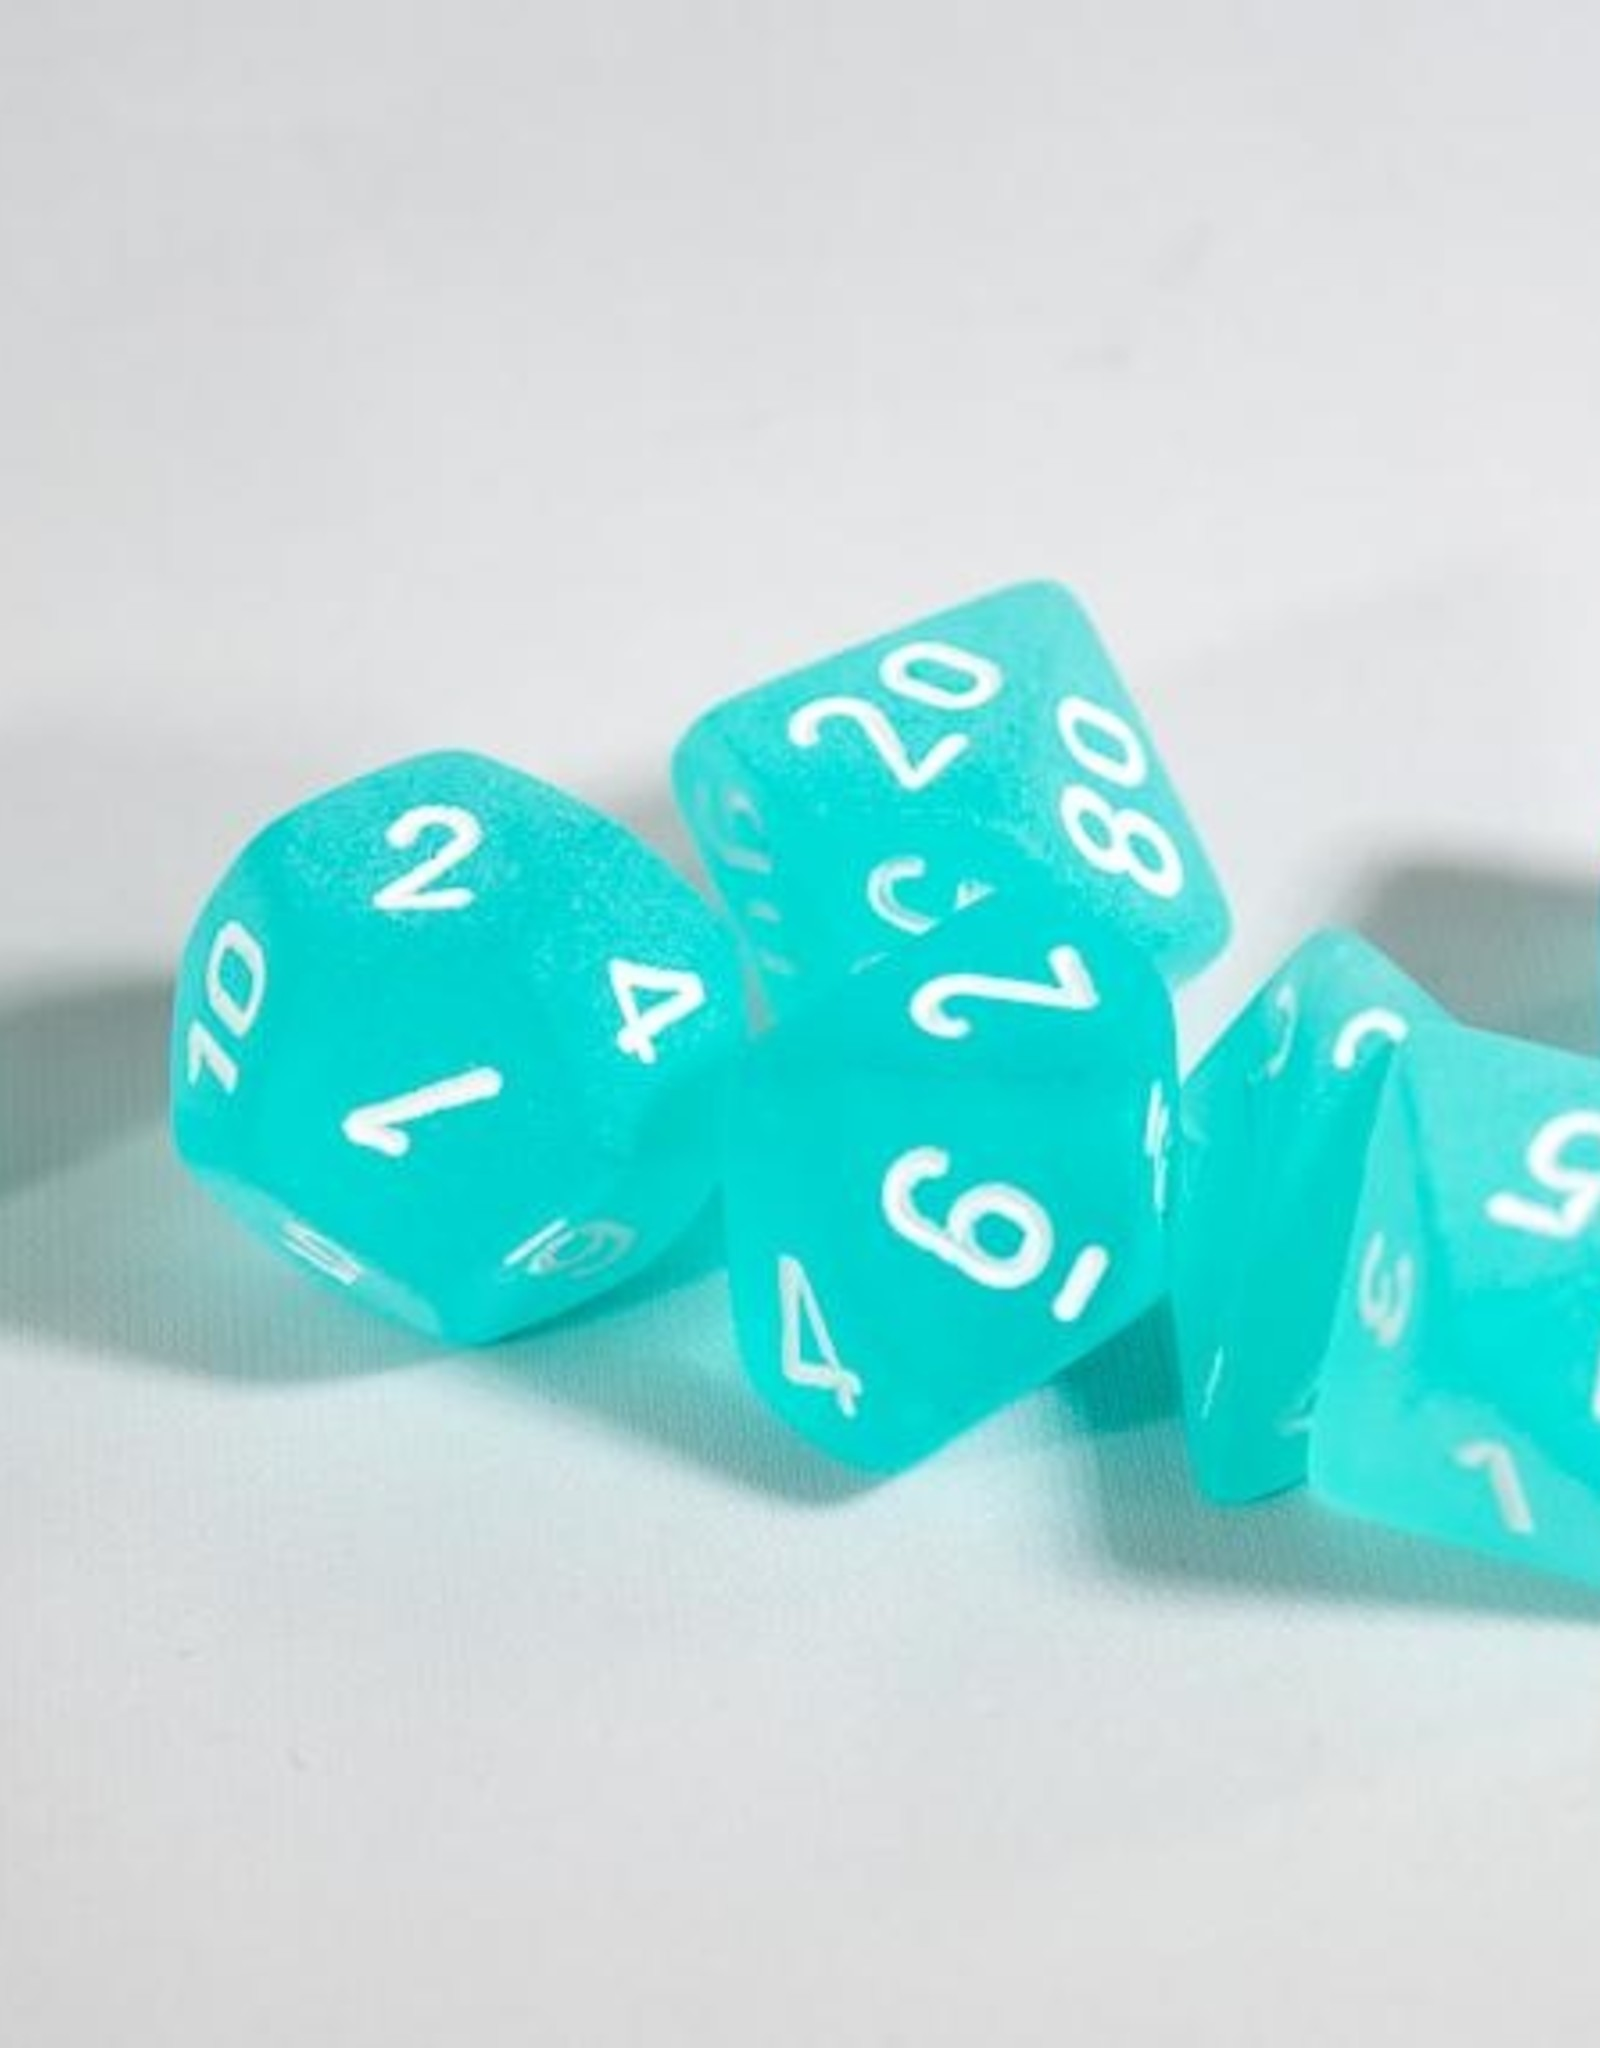 Chessex Chessex 7-Die set Frosted - Teal/White